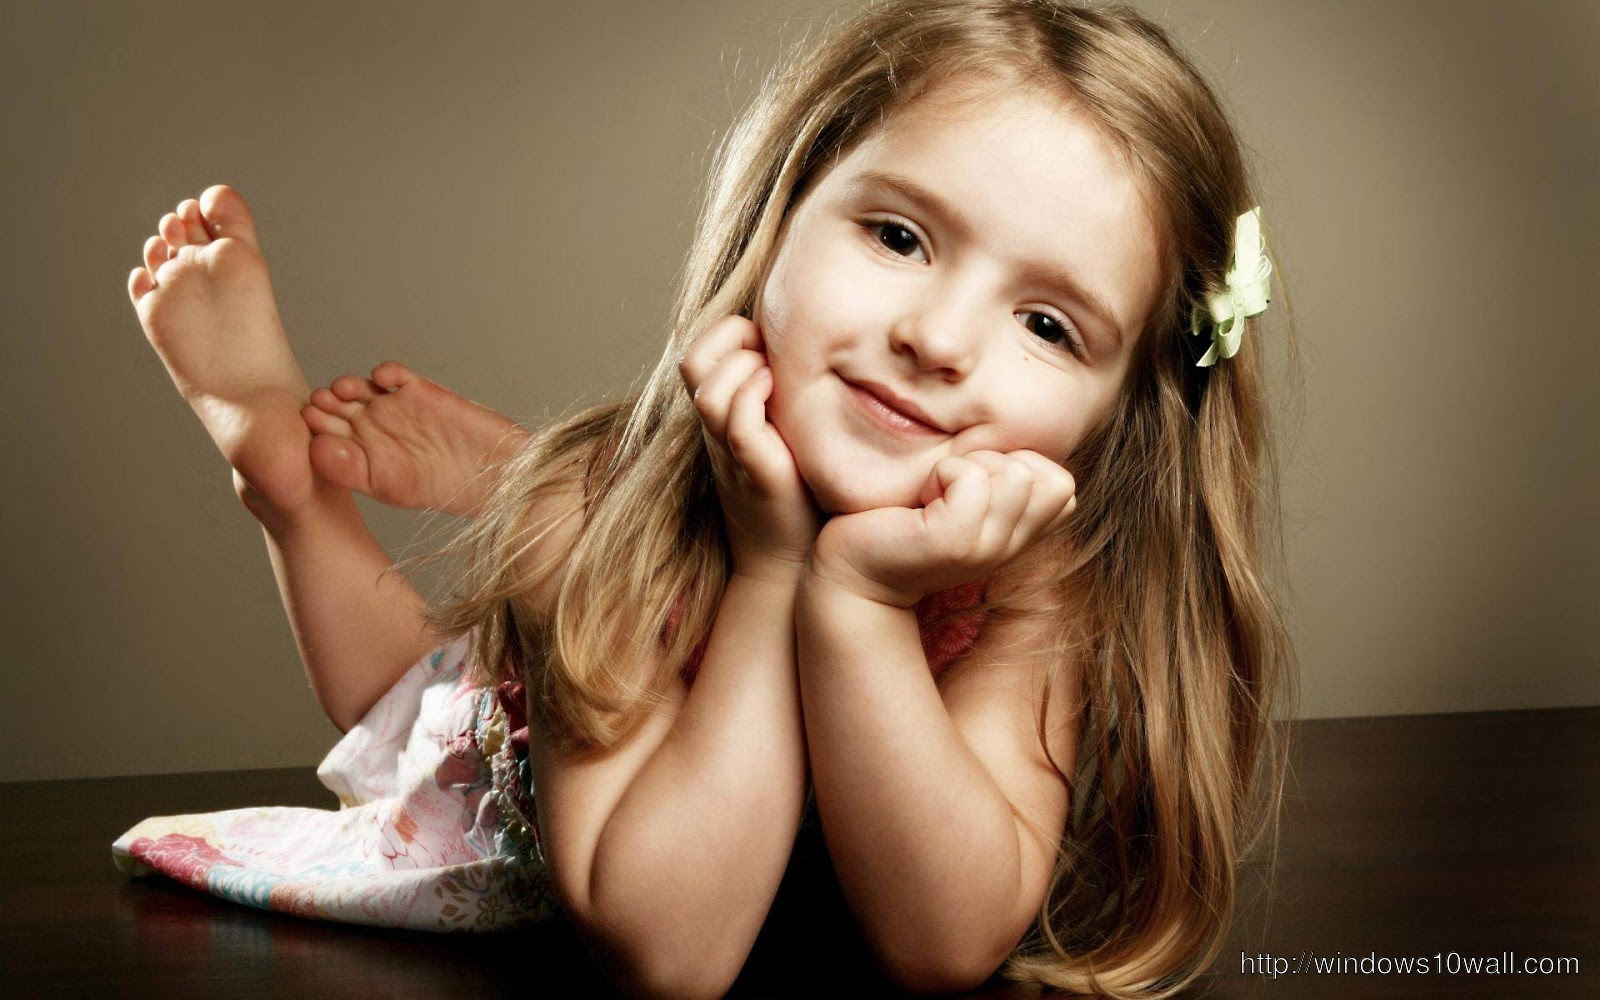 So Sweet Cute Baby Girl Wallpaper